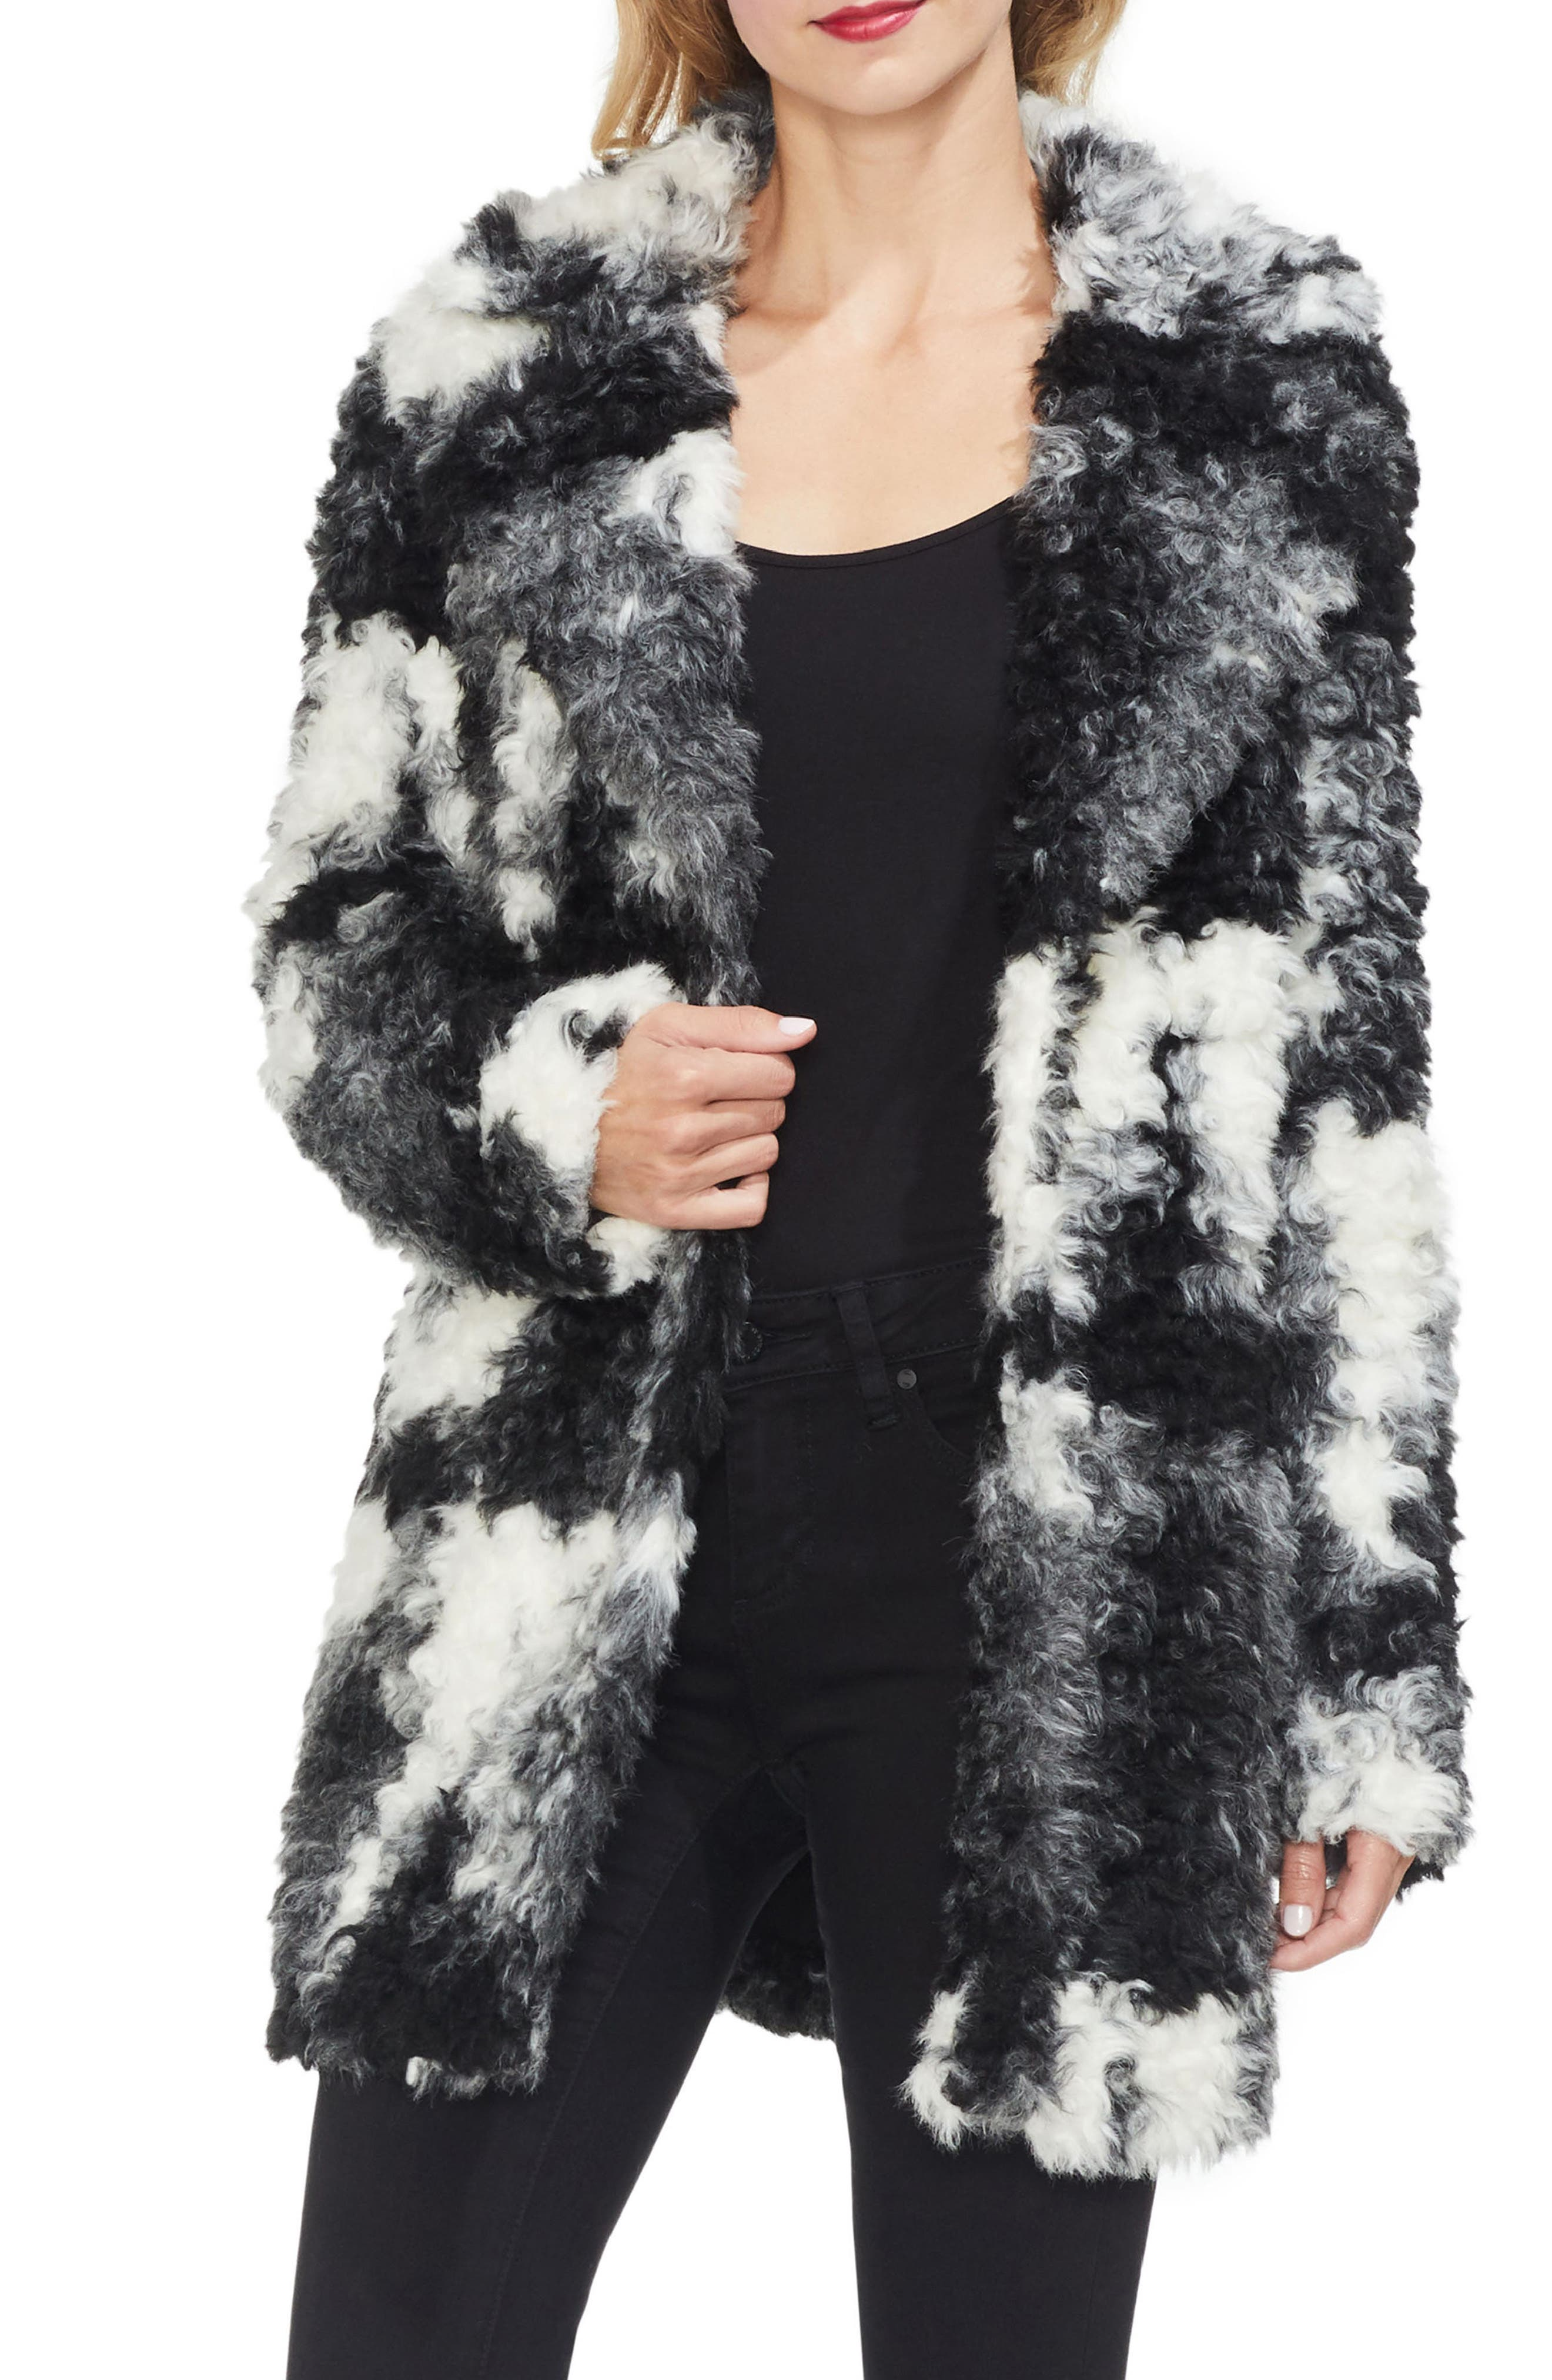 VINCE CAMUTO Marled Shaggy Faux Fur Jacket in Rich Black